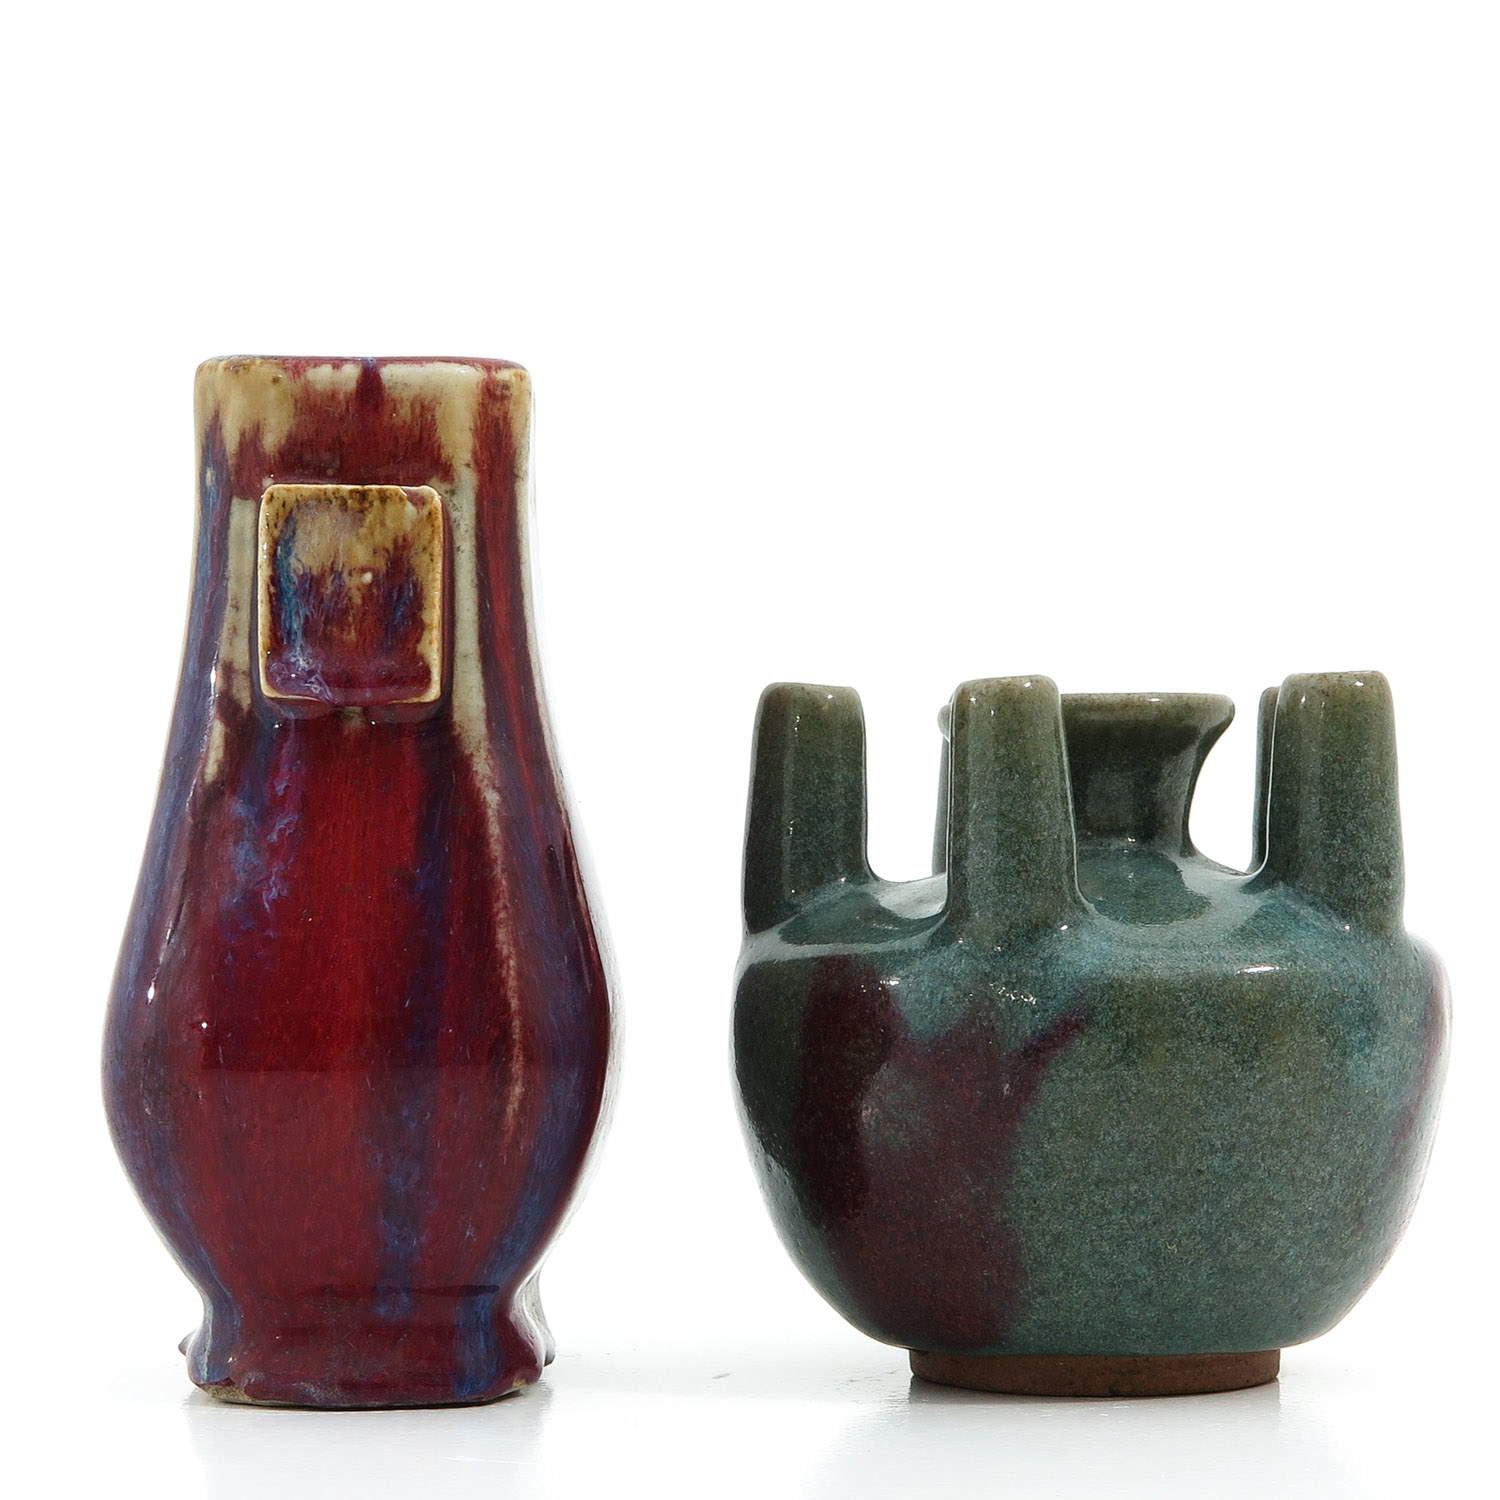 2 Chinese Vases - Image 4 of 10